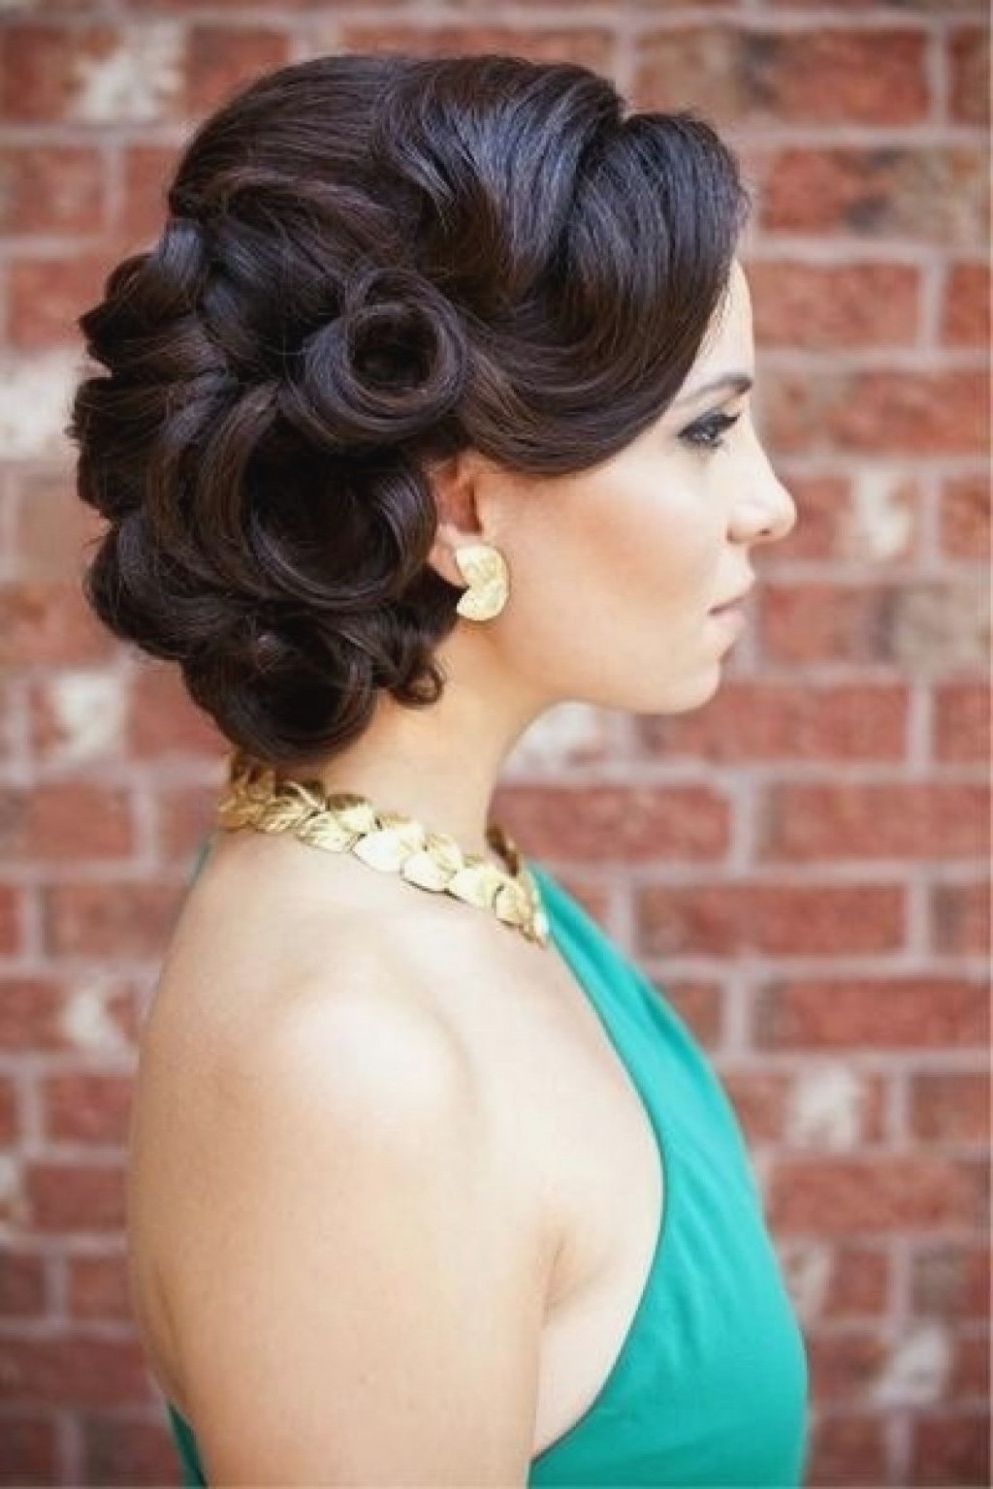 Most Recently Released Vintage Wedding Hairstyles For Medium Length Hair With Vintage Wedding Updos For Long Hair11 Vintage Updos For Long Hair (View 5 of 15)